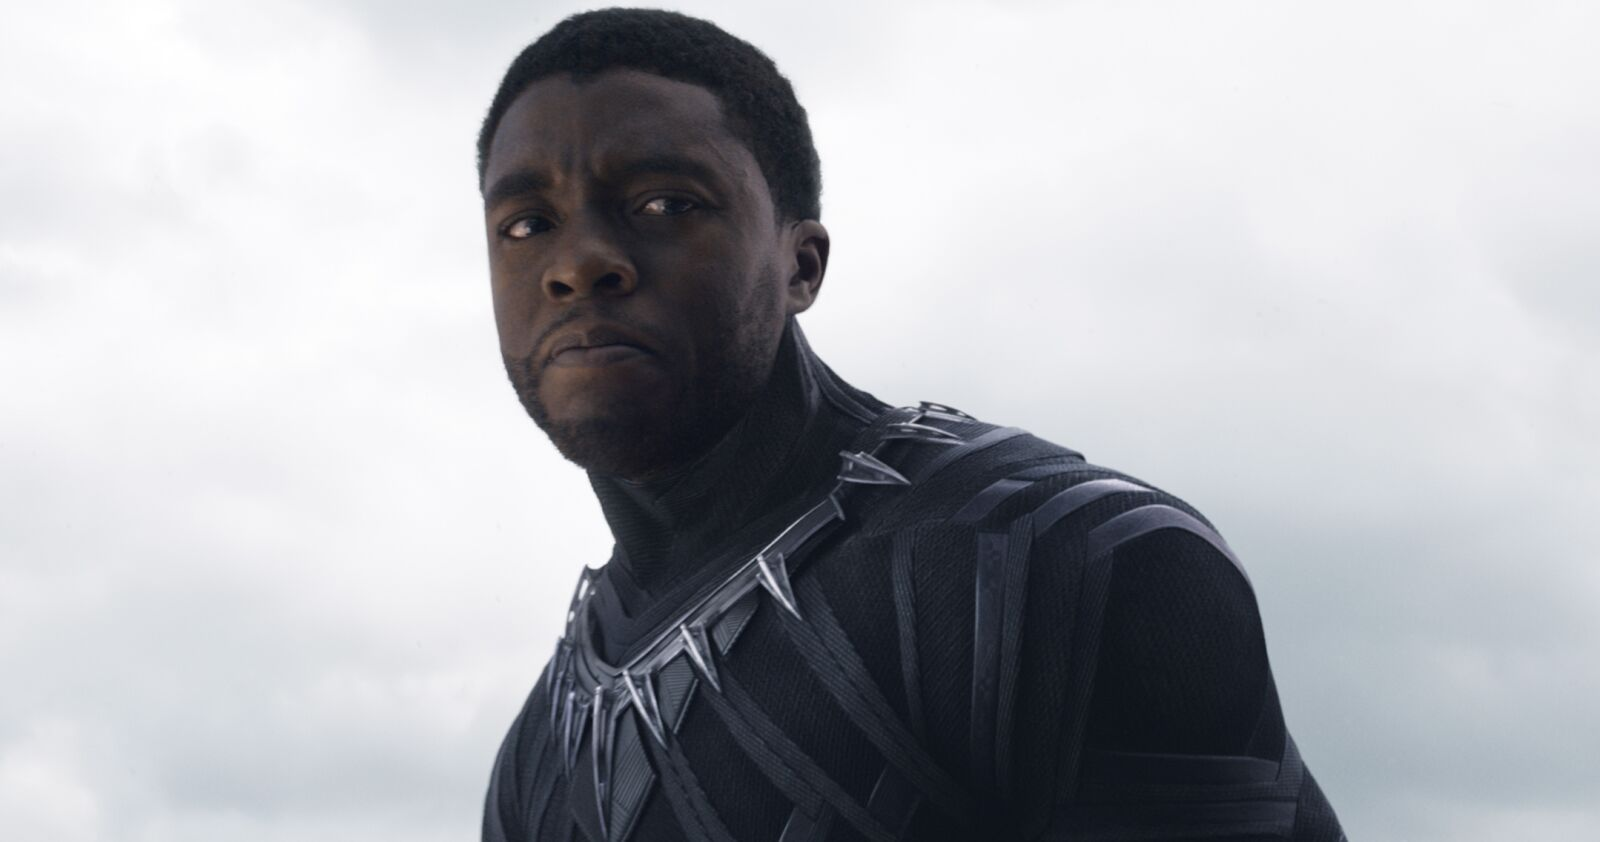 Black Panther 2 finally has a release date and it's much, much too far away